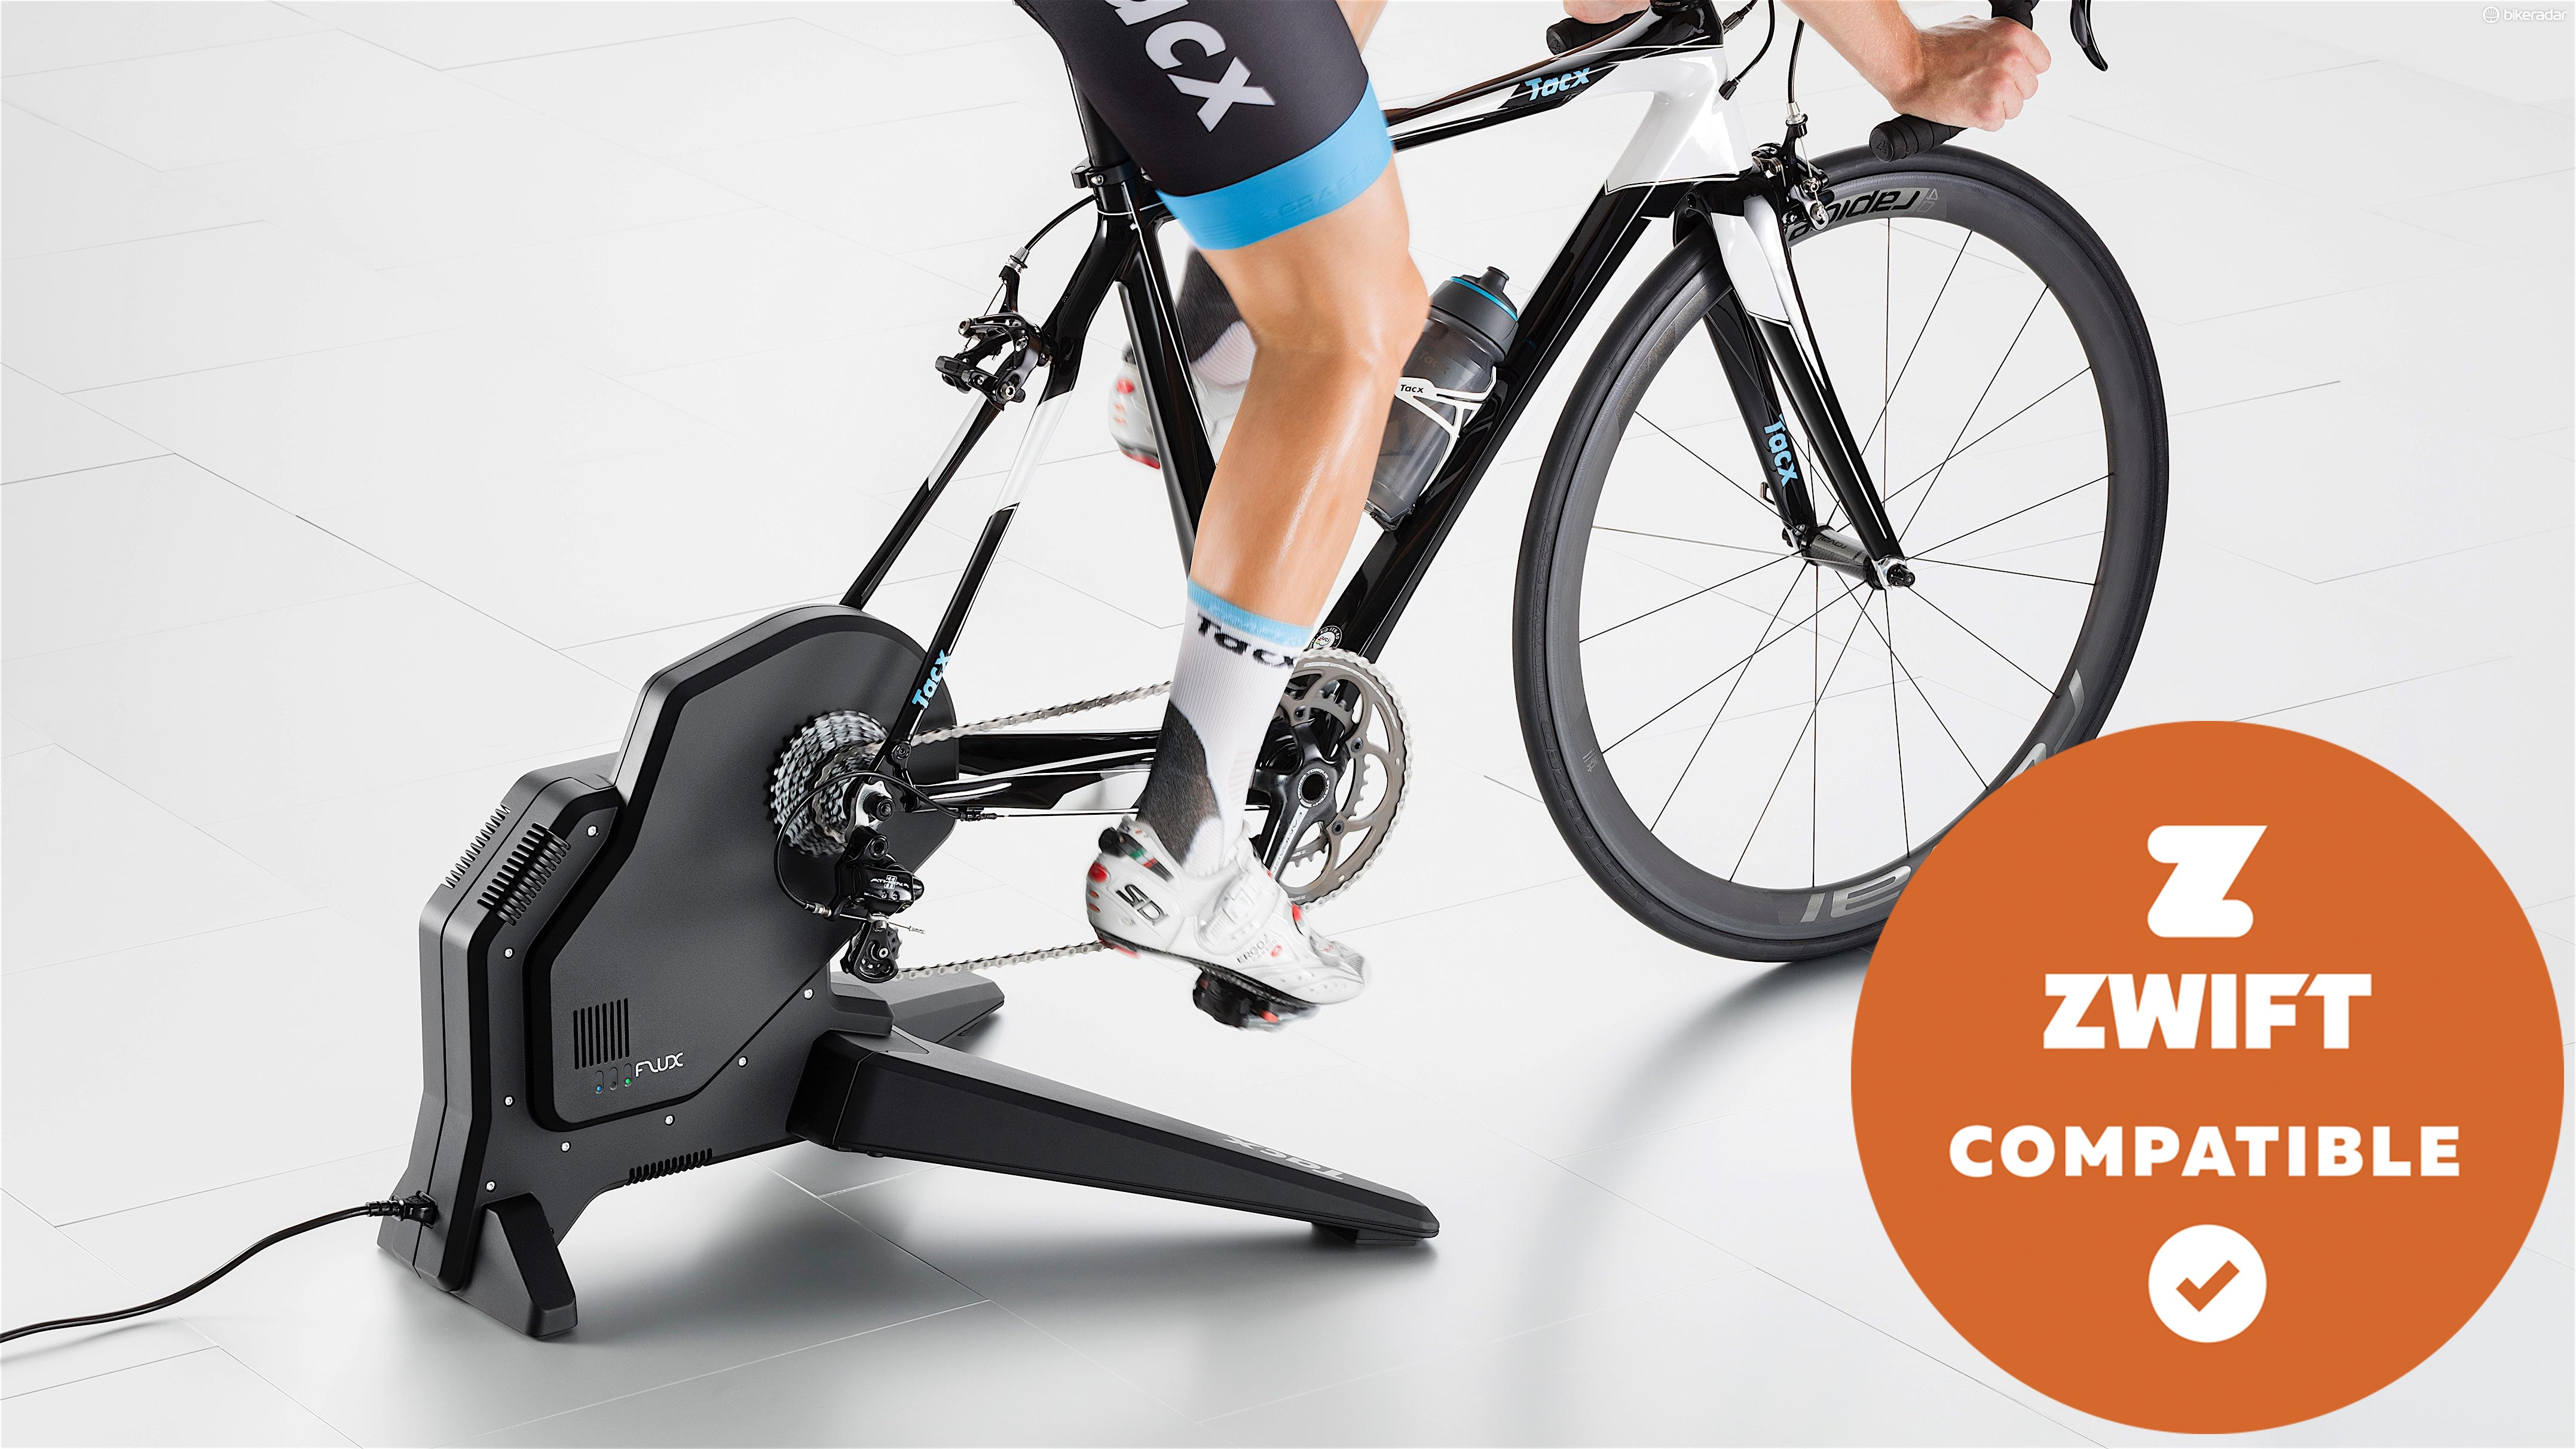 The resistance of a smart trainer is controlled by software such as Zwift